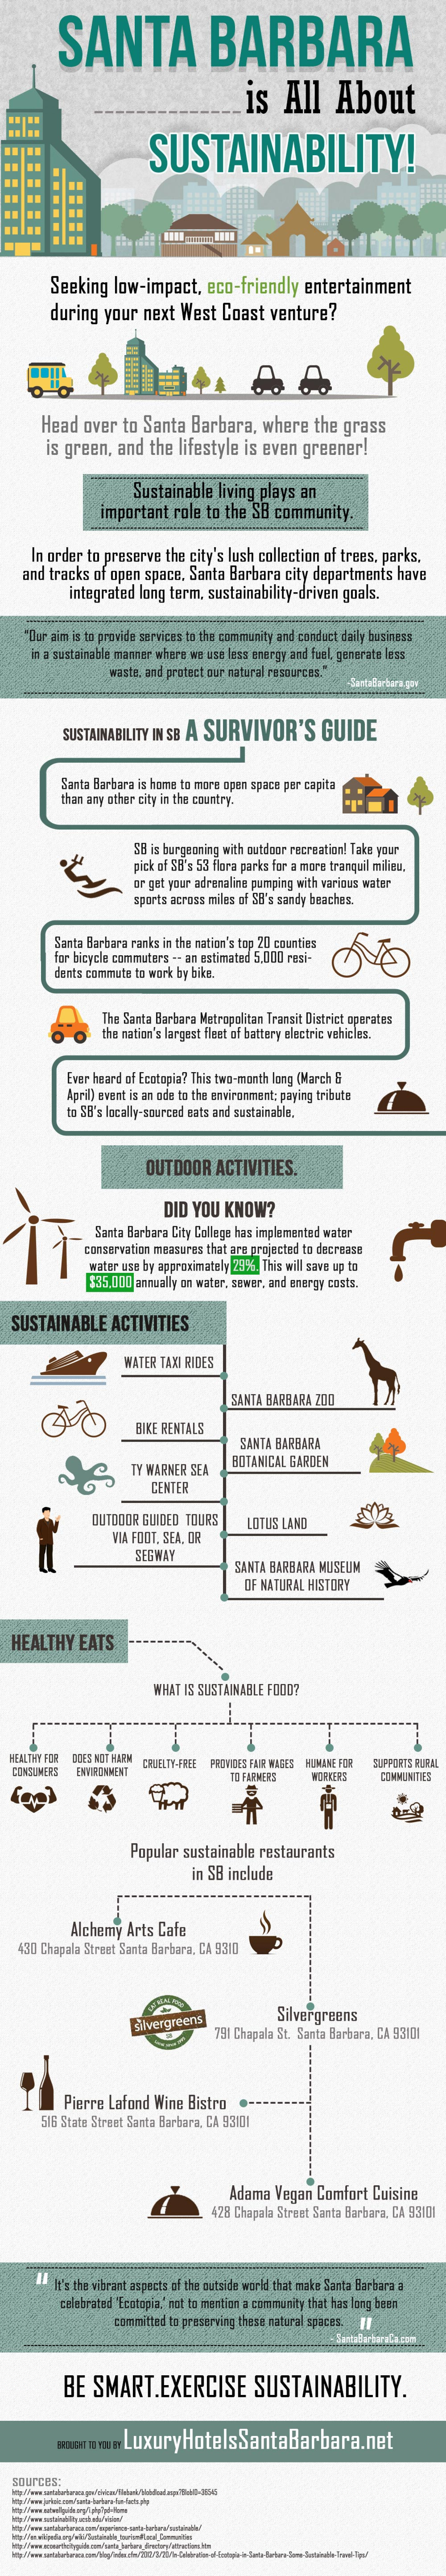 Santa Barbara is all about Sustainability! Infographic